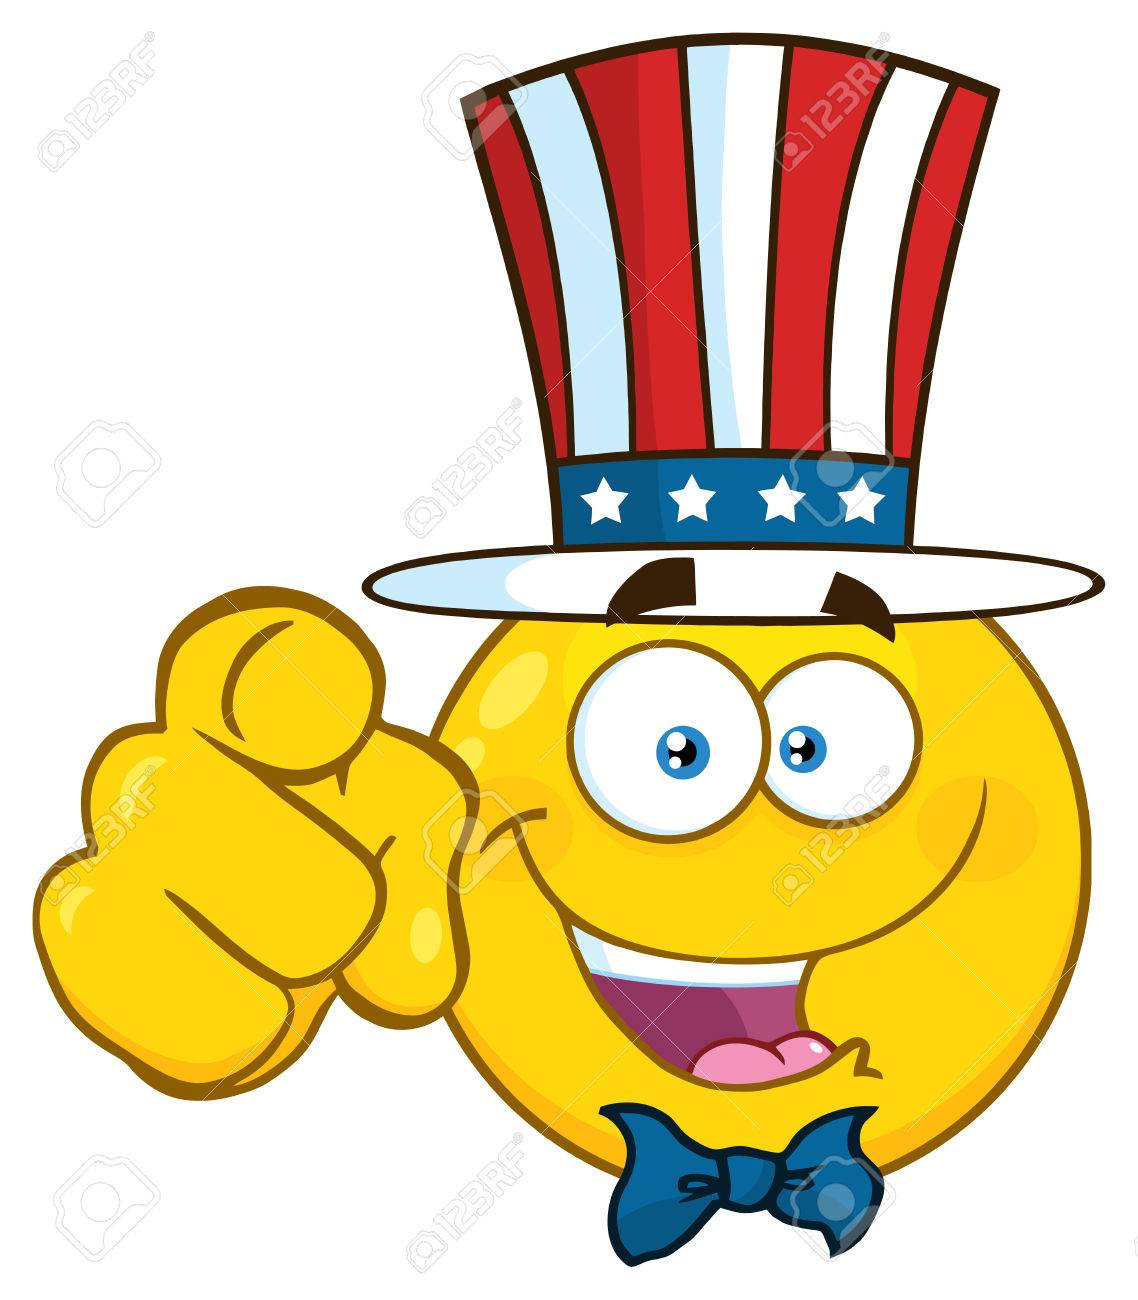 Happy Patriotic Yellow Cartoon Emoji Face Character Wearing A ...